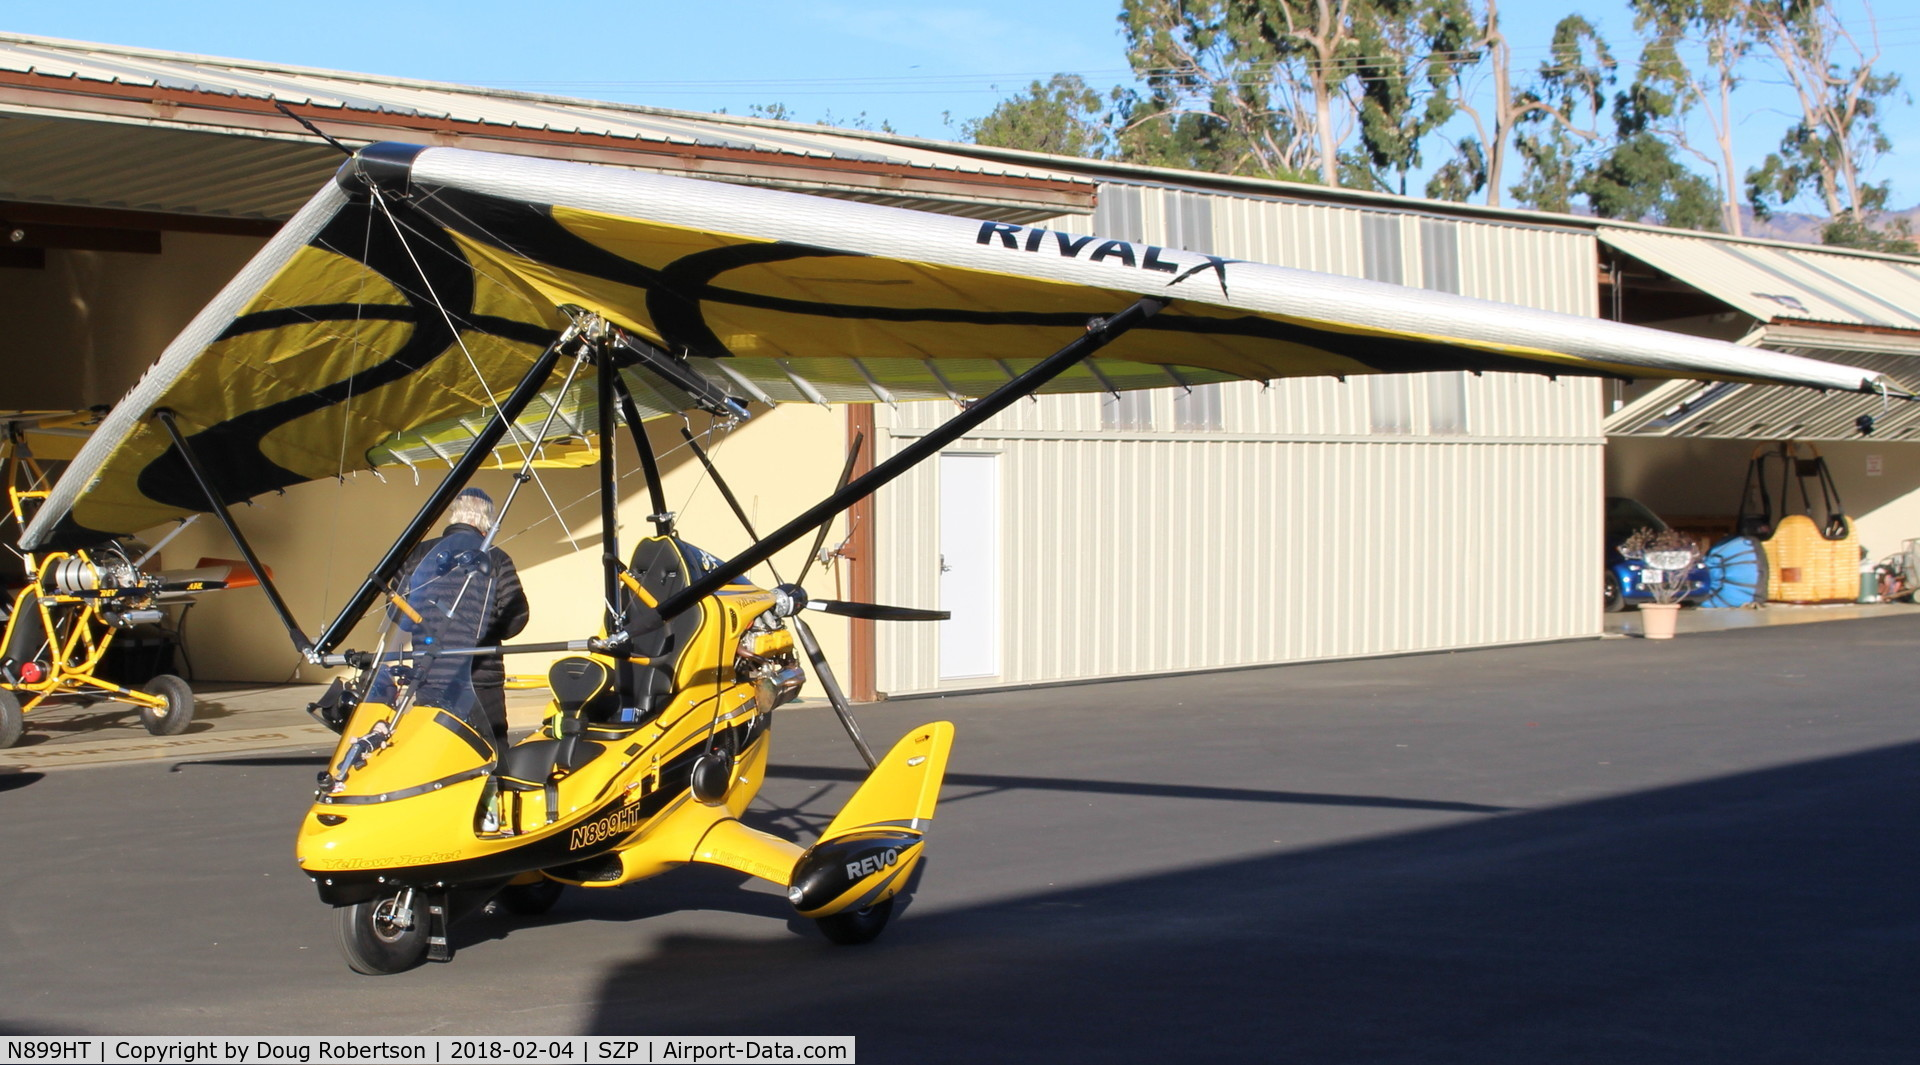 N899HT, 2016 Evolution Trikes Revo C/N 000618, 2016 Evolution Aircraft Inc. REVO weight-shift control LSA, Rotax 912ULS 100 Hp pusher, outside its hangar